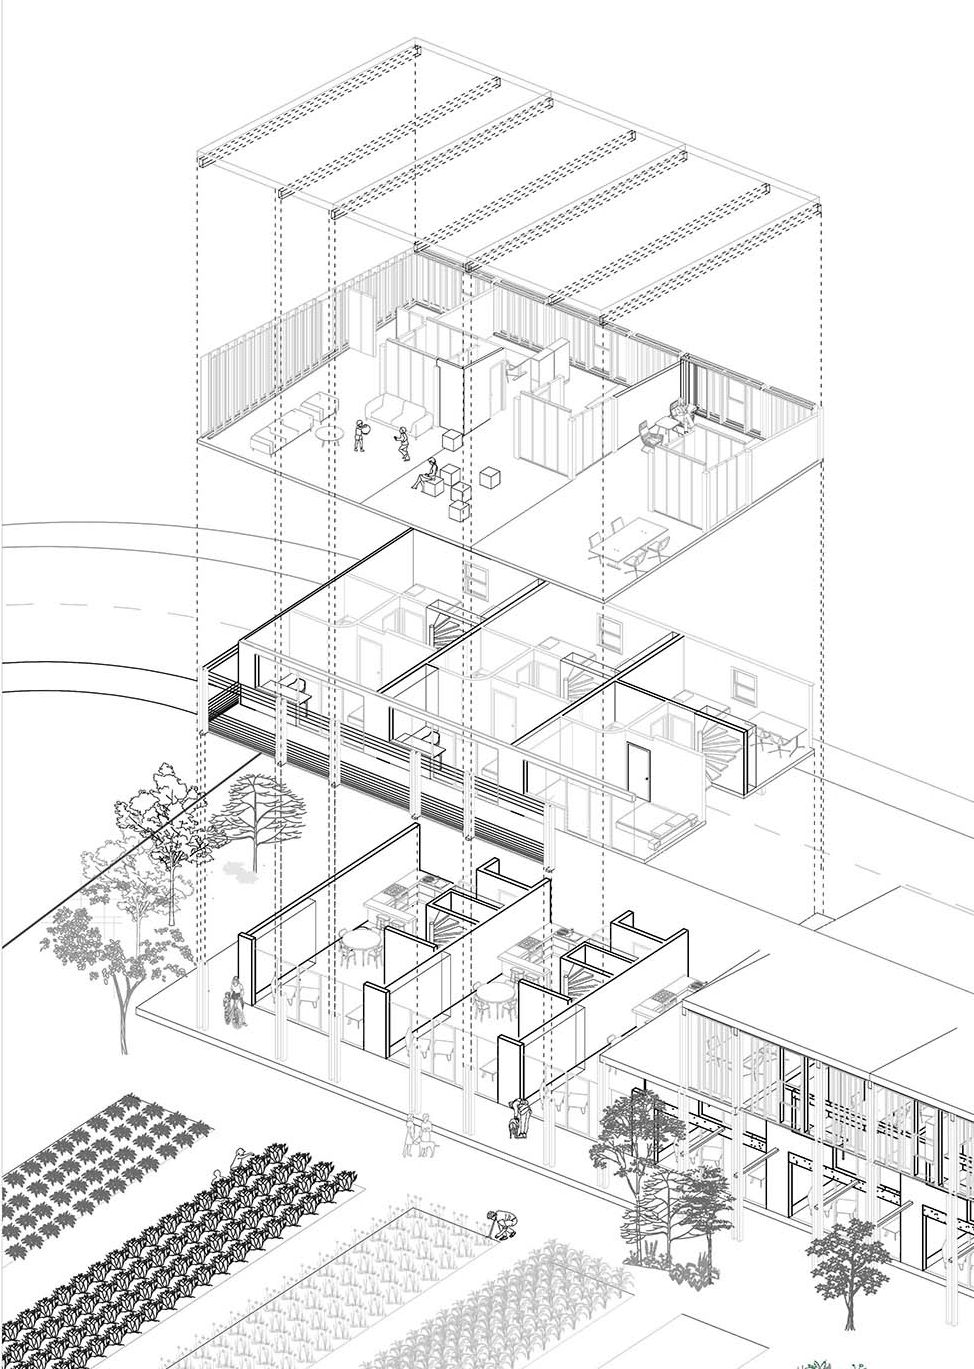 974x1369 Ideas For Accessible Living. The For Student